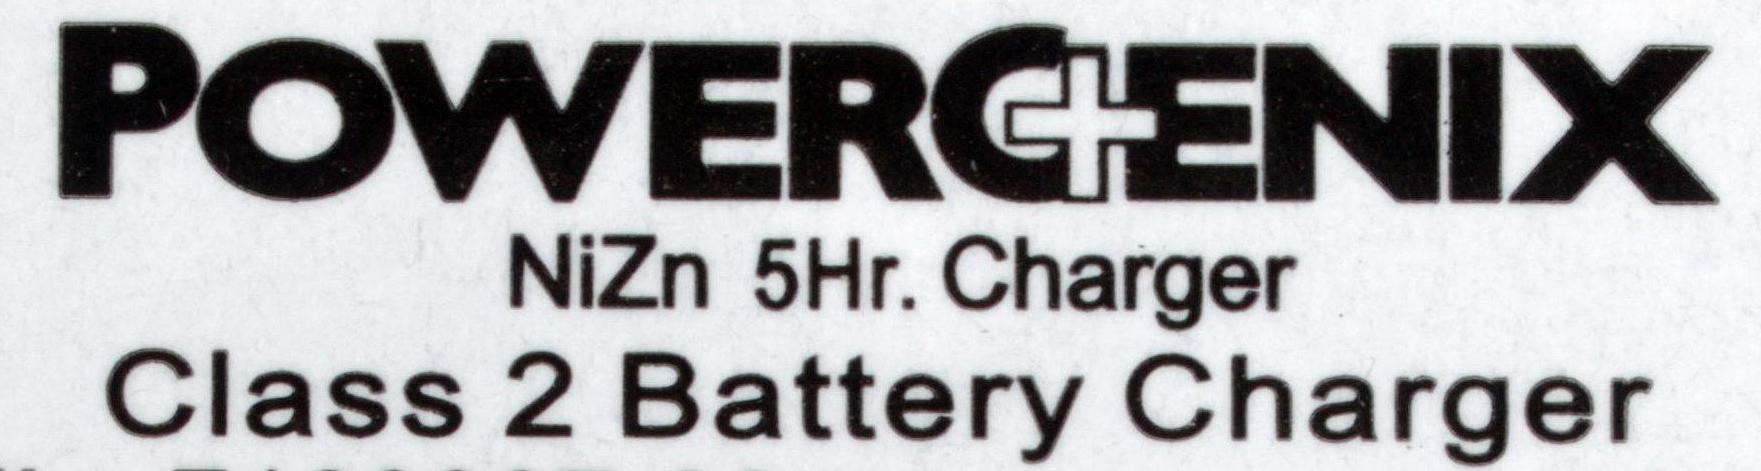 Battery-charger-2-detail.jpeg